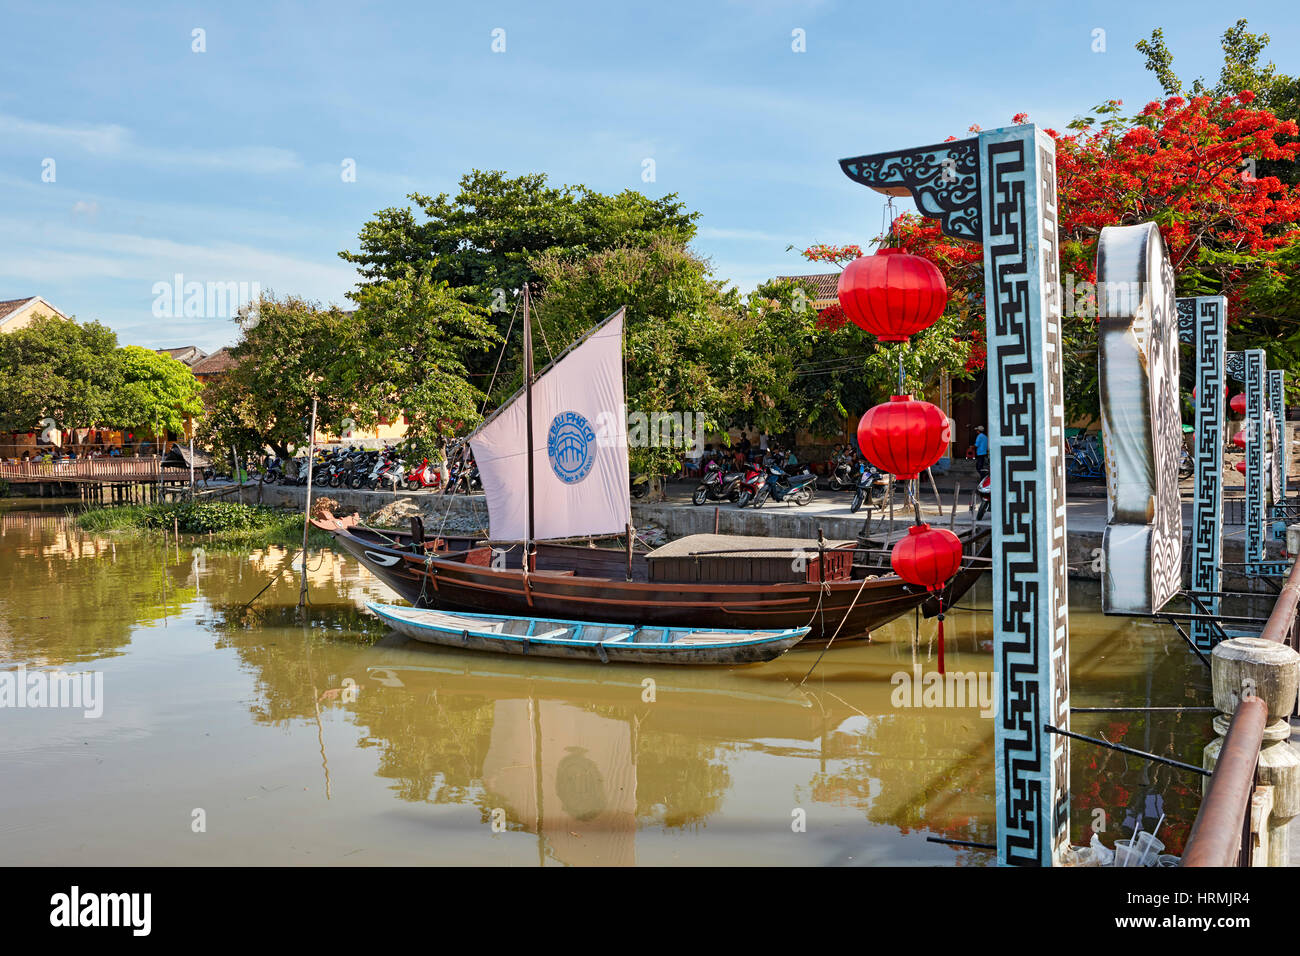 Traditional boat on the Thu Bon River. Hoi An, Quang Nam Province, Vietnam. - Stock Image